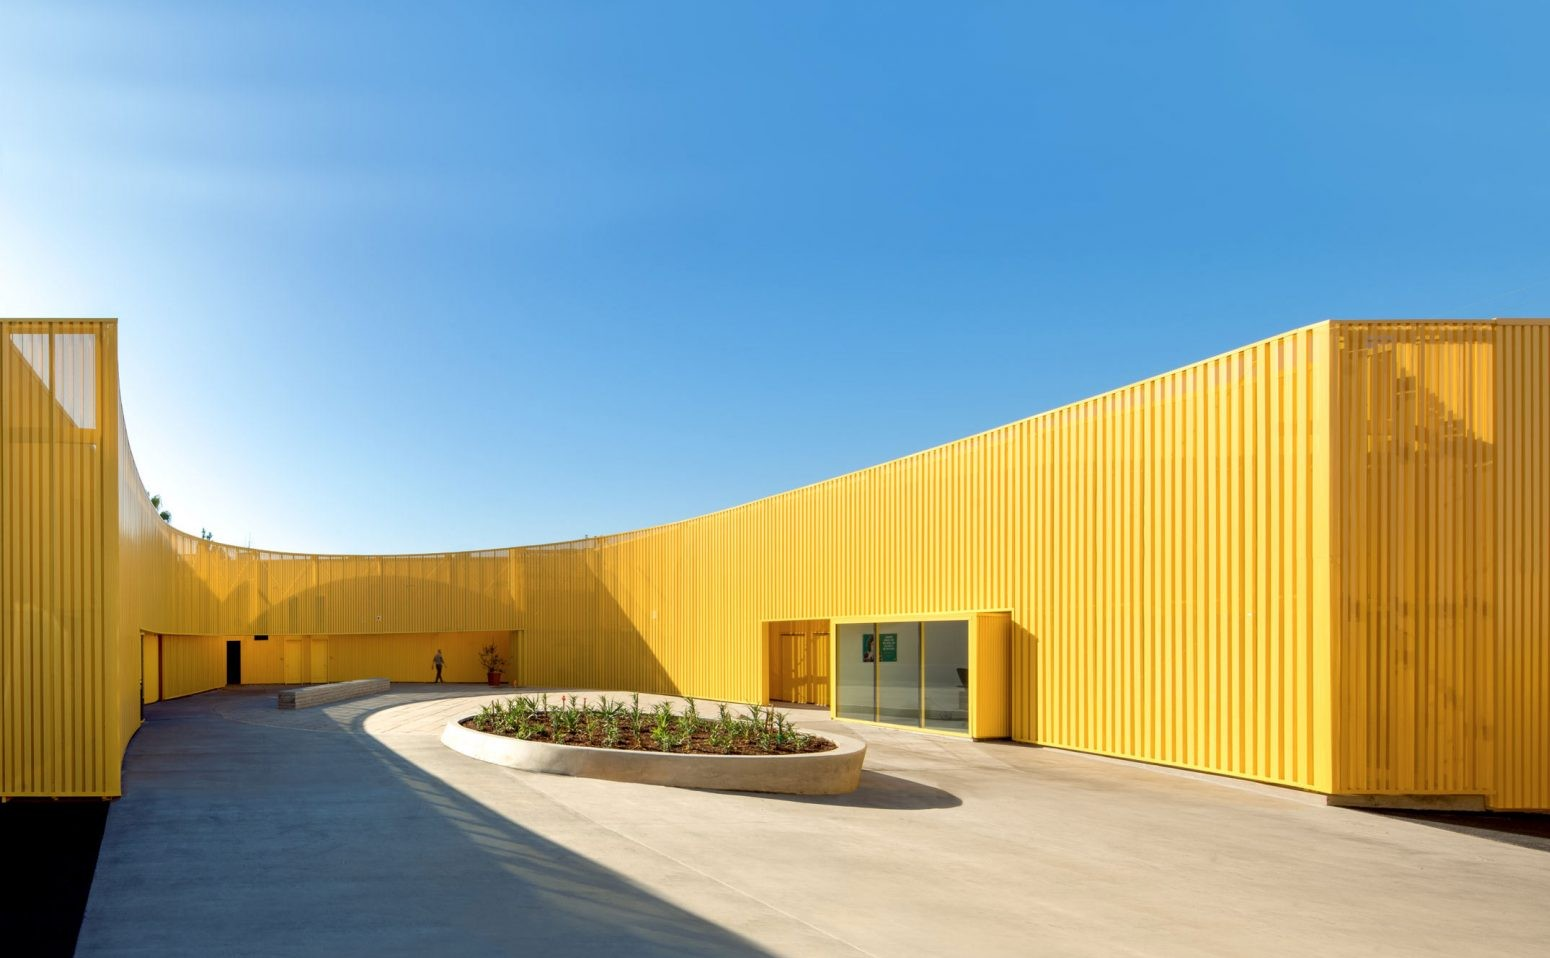 south-los-angeles-high-school-brooks-scarpa-architecture-yellow-california-usa_dezeen_hero-1704x959